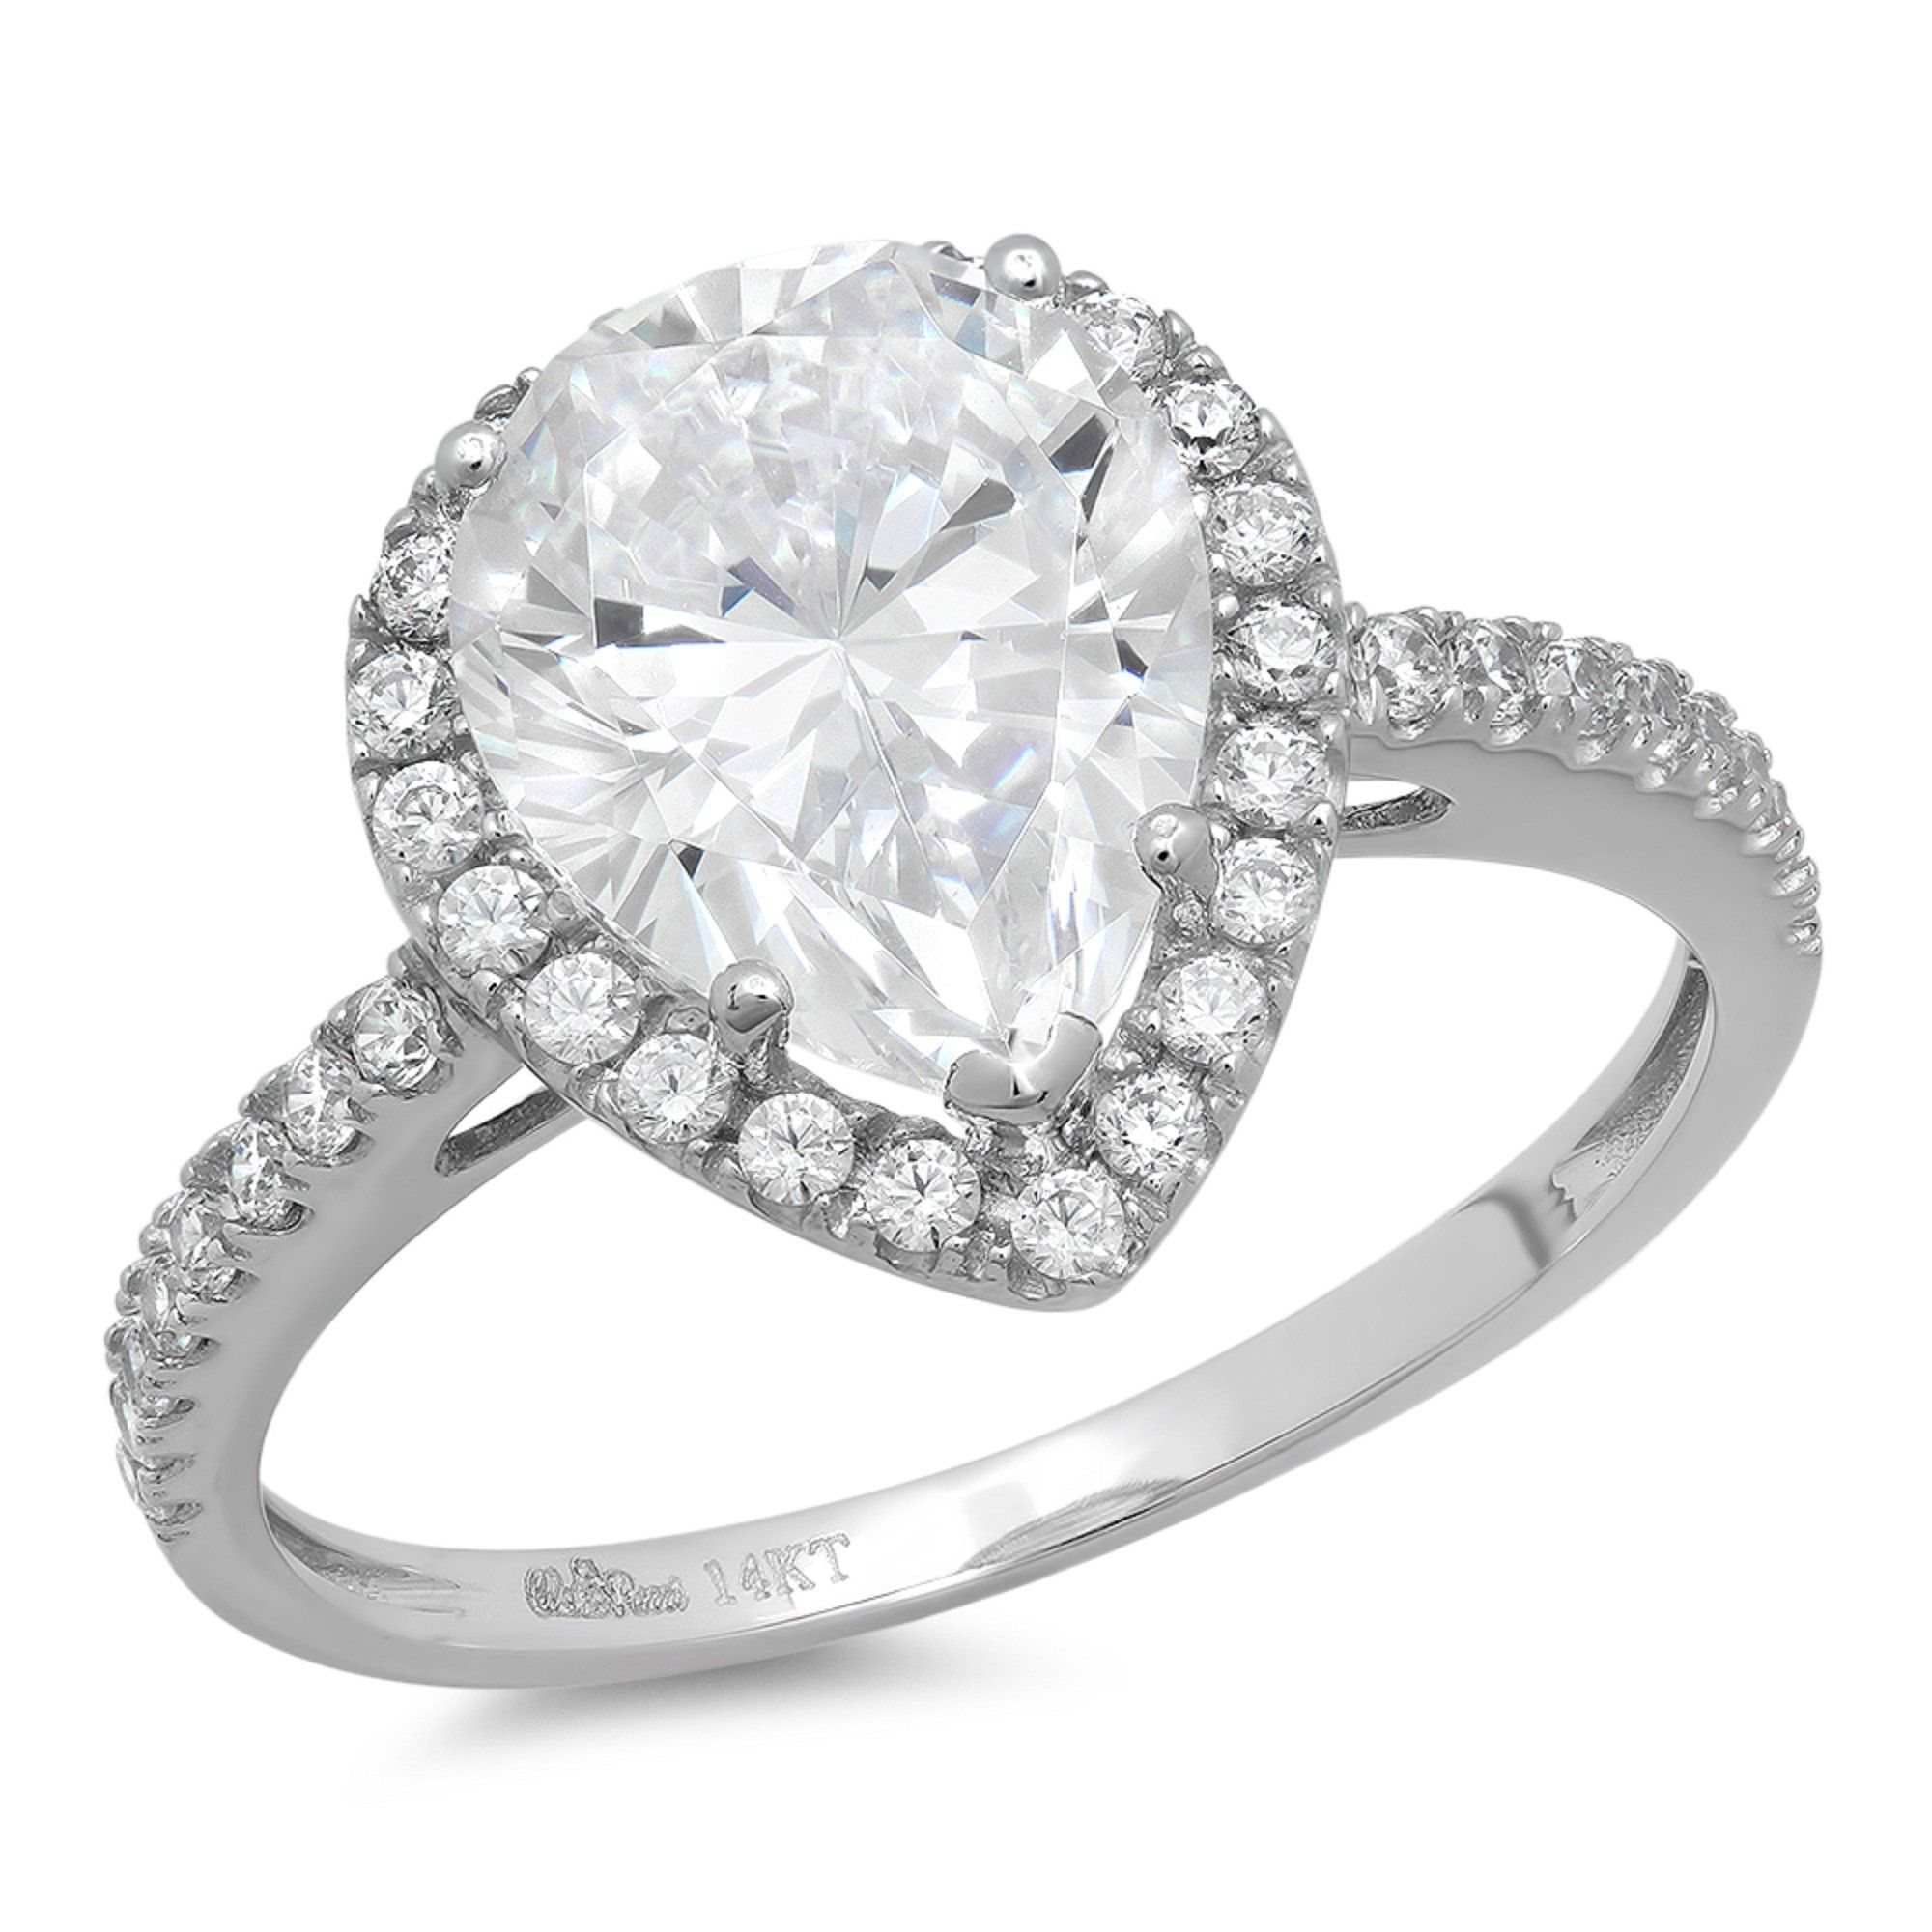 Clara pucci ct pear cut halo solitaire wedding engagement ring